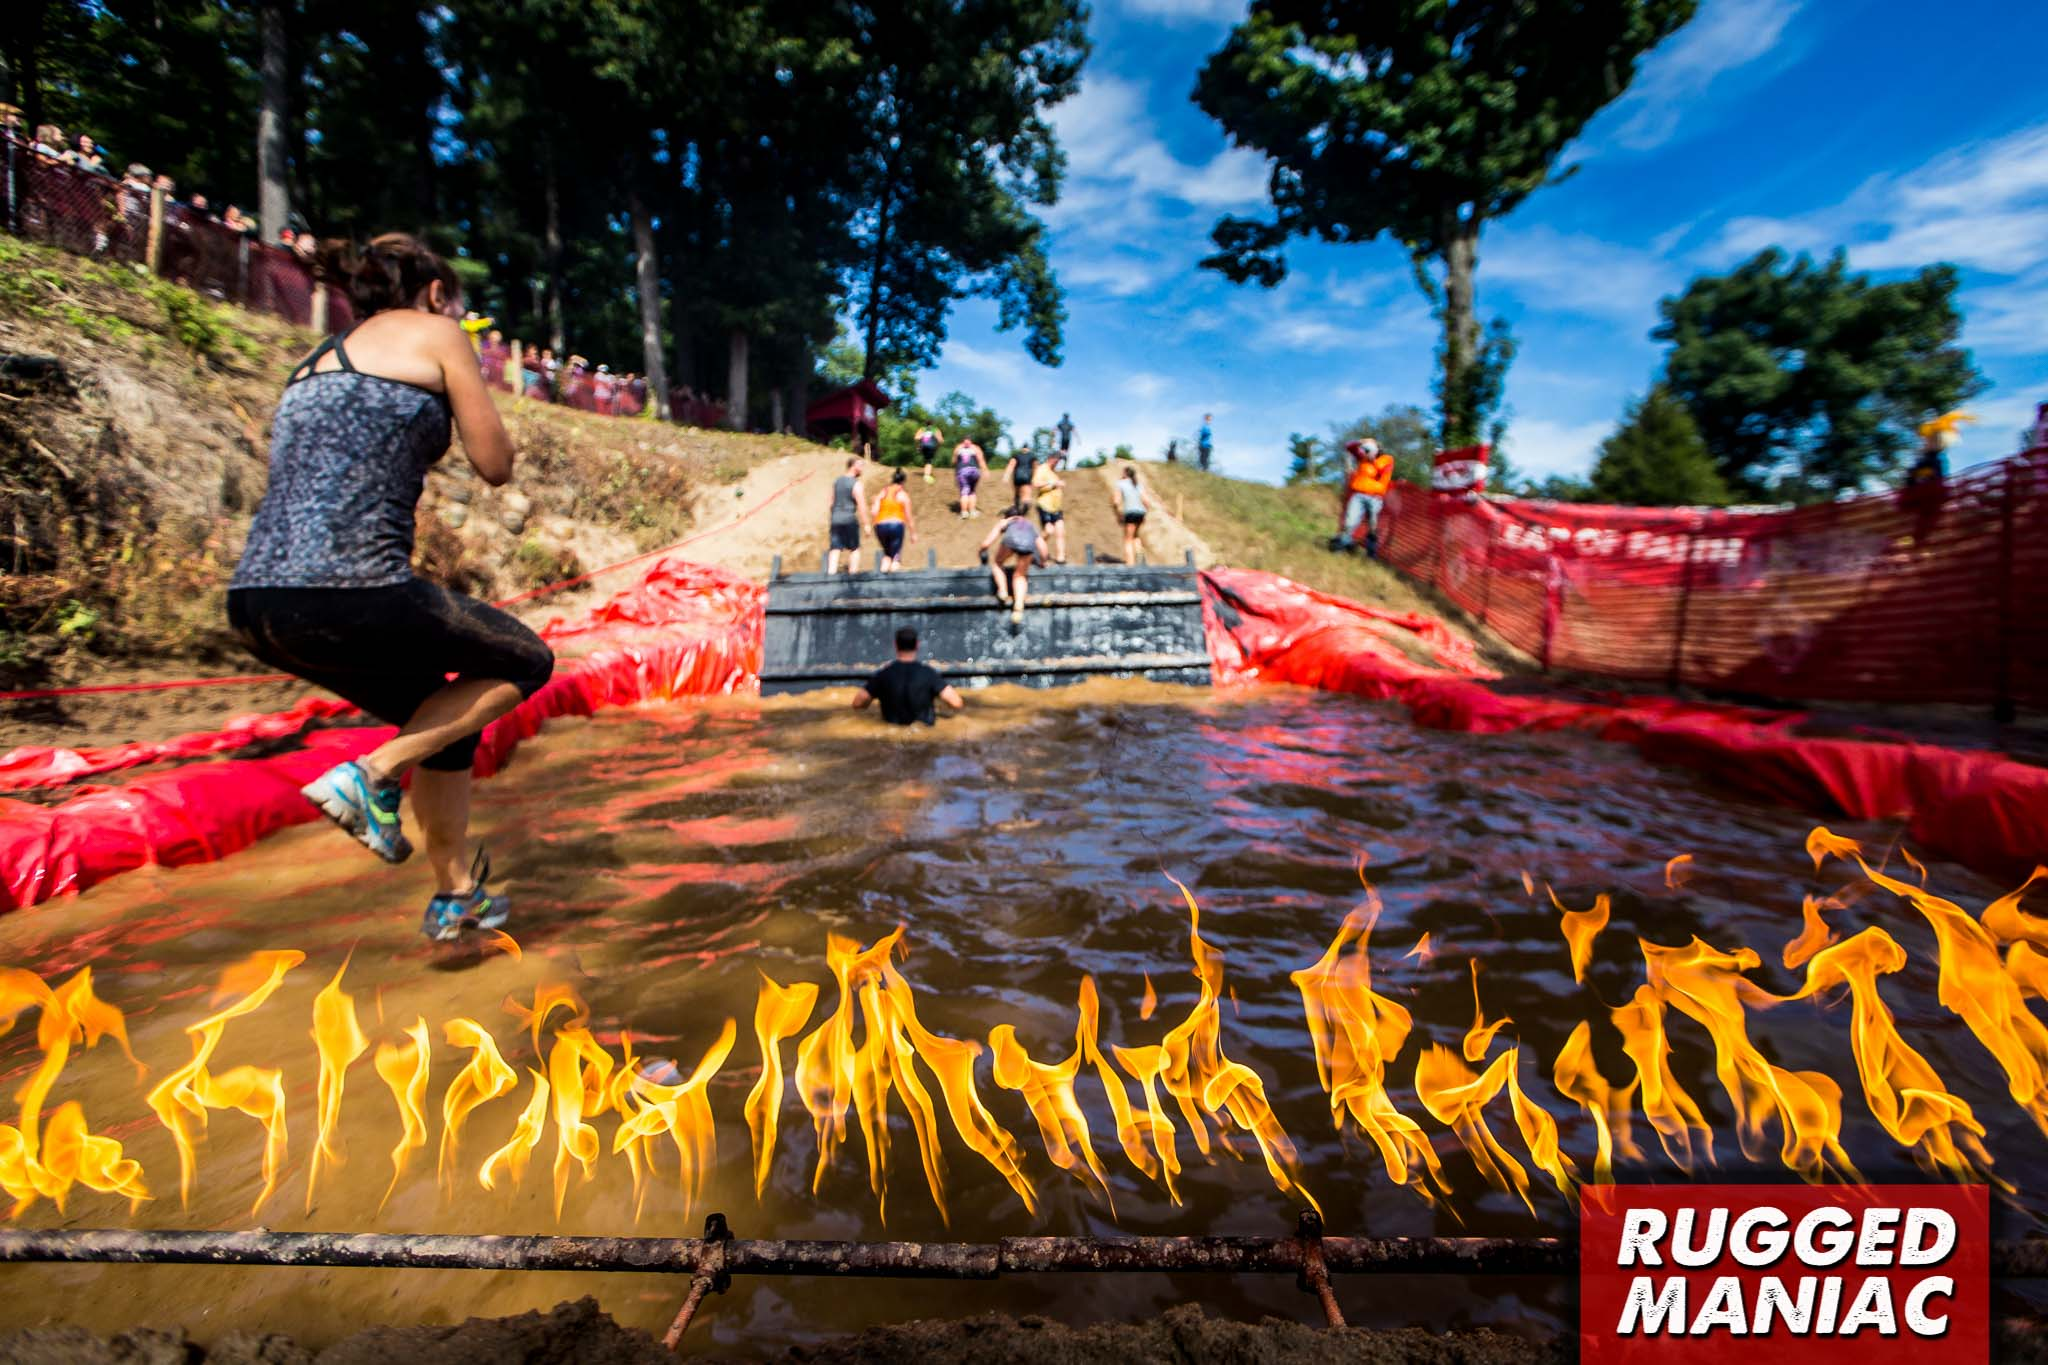 Rugged Maniac   The Best Value In OCR | Mud Run, Obstacle Course Race U0026  Ninja Warrior Guide